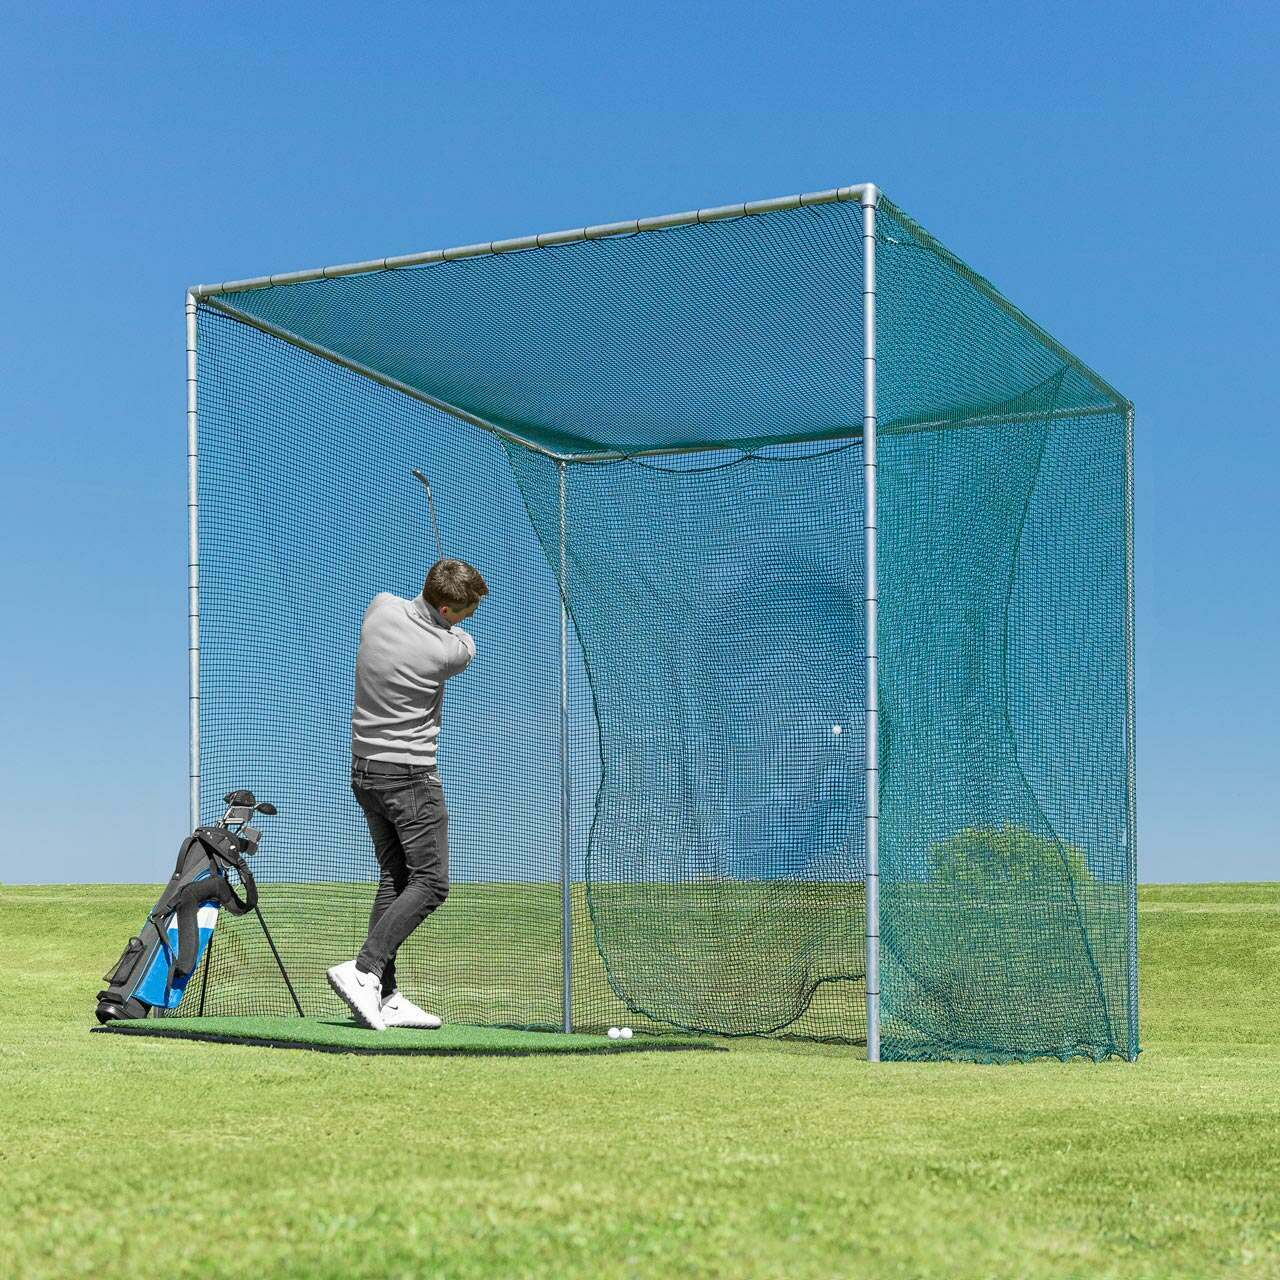 Golf cage for home practice